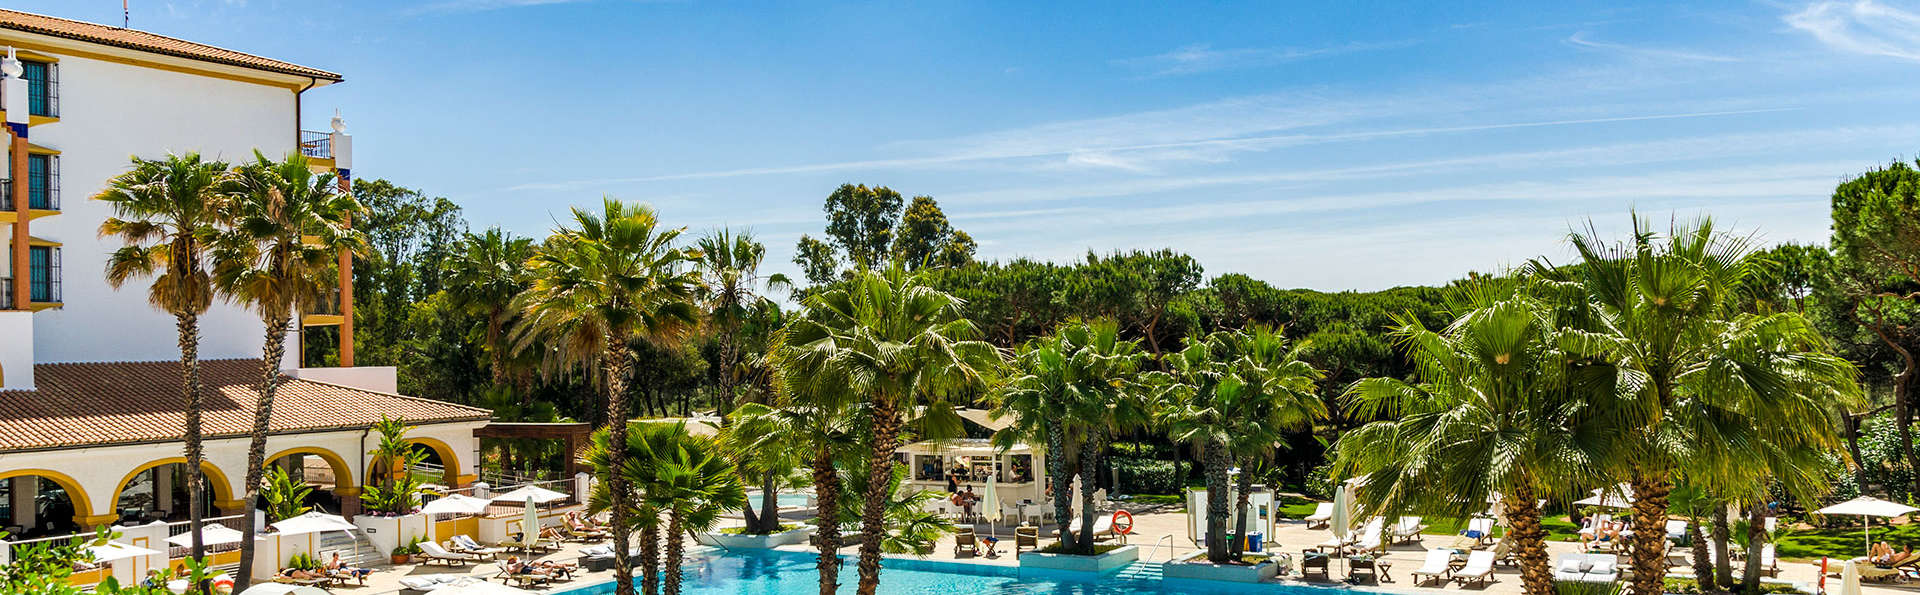 Sensimar Isla Cristina Palace (Adults Only)  - EDIT_NEW_pool5.jpg